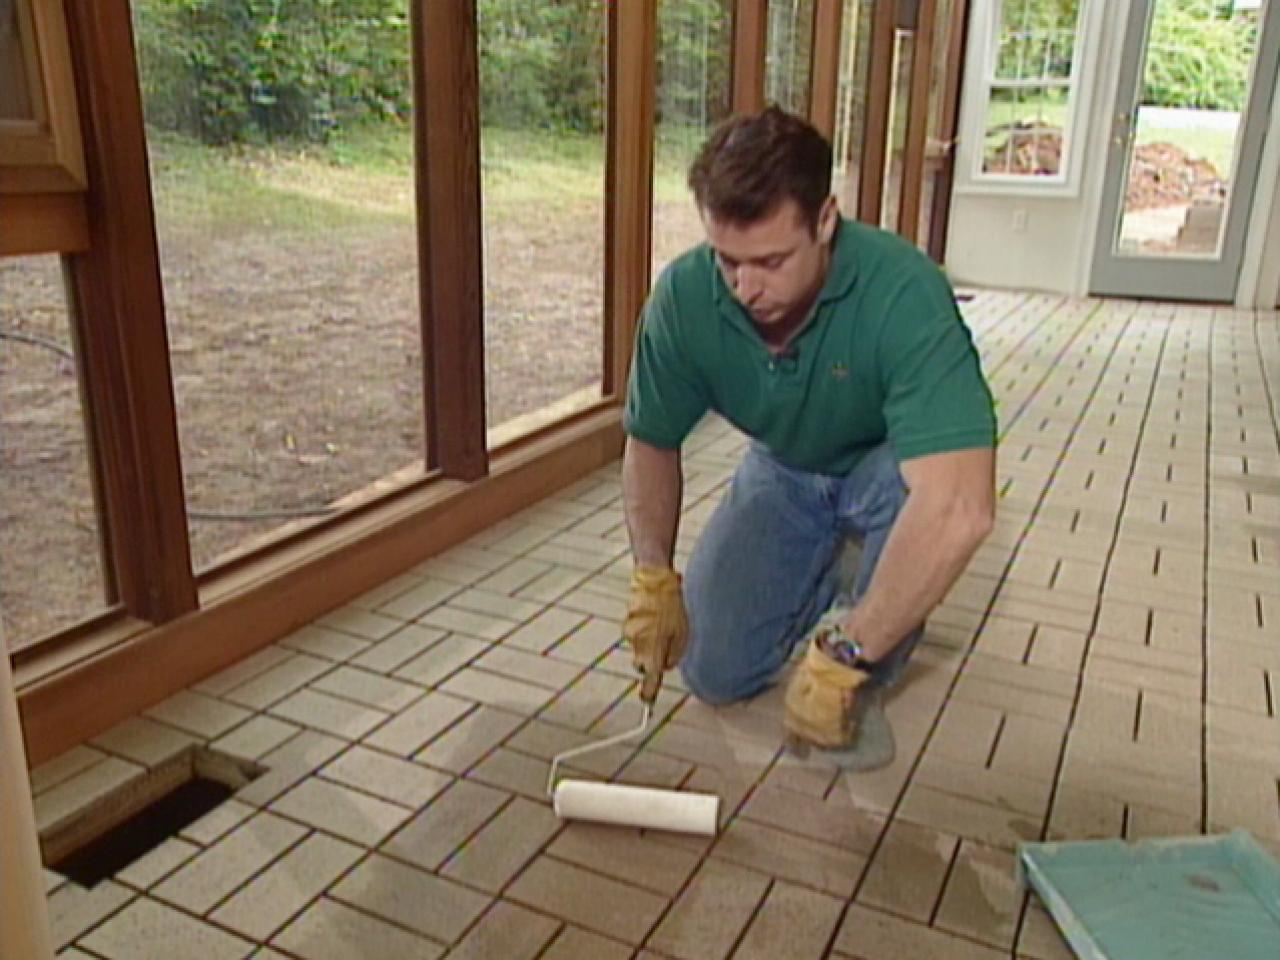 Brick Sealer Will Protect Floor From Moisture